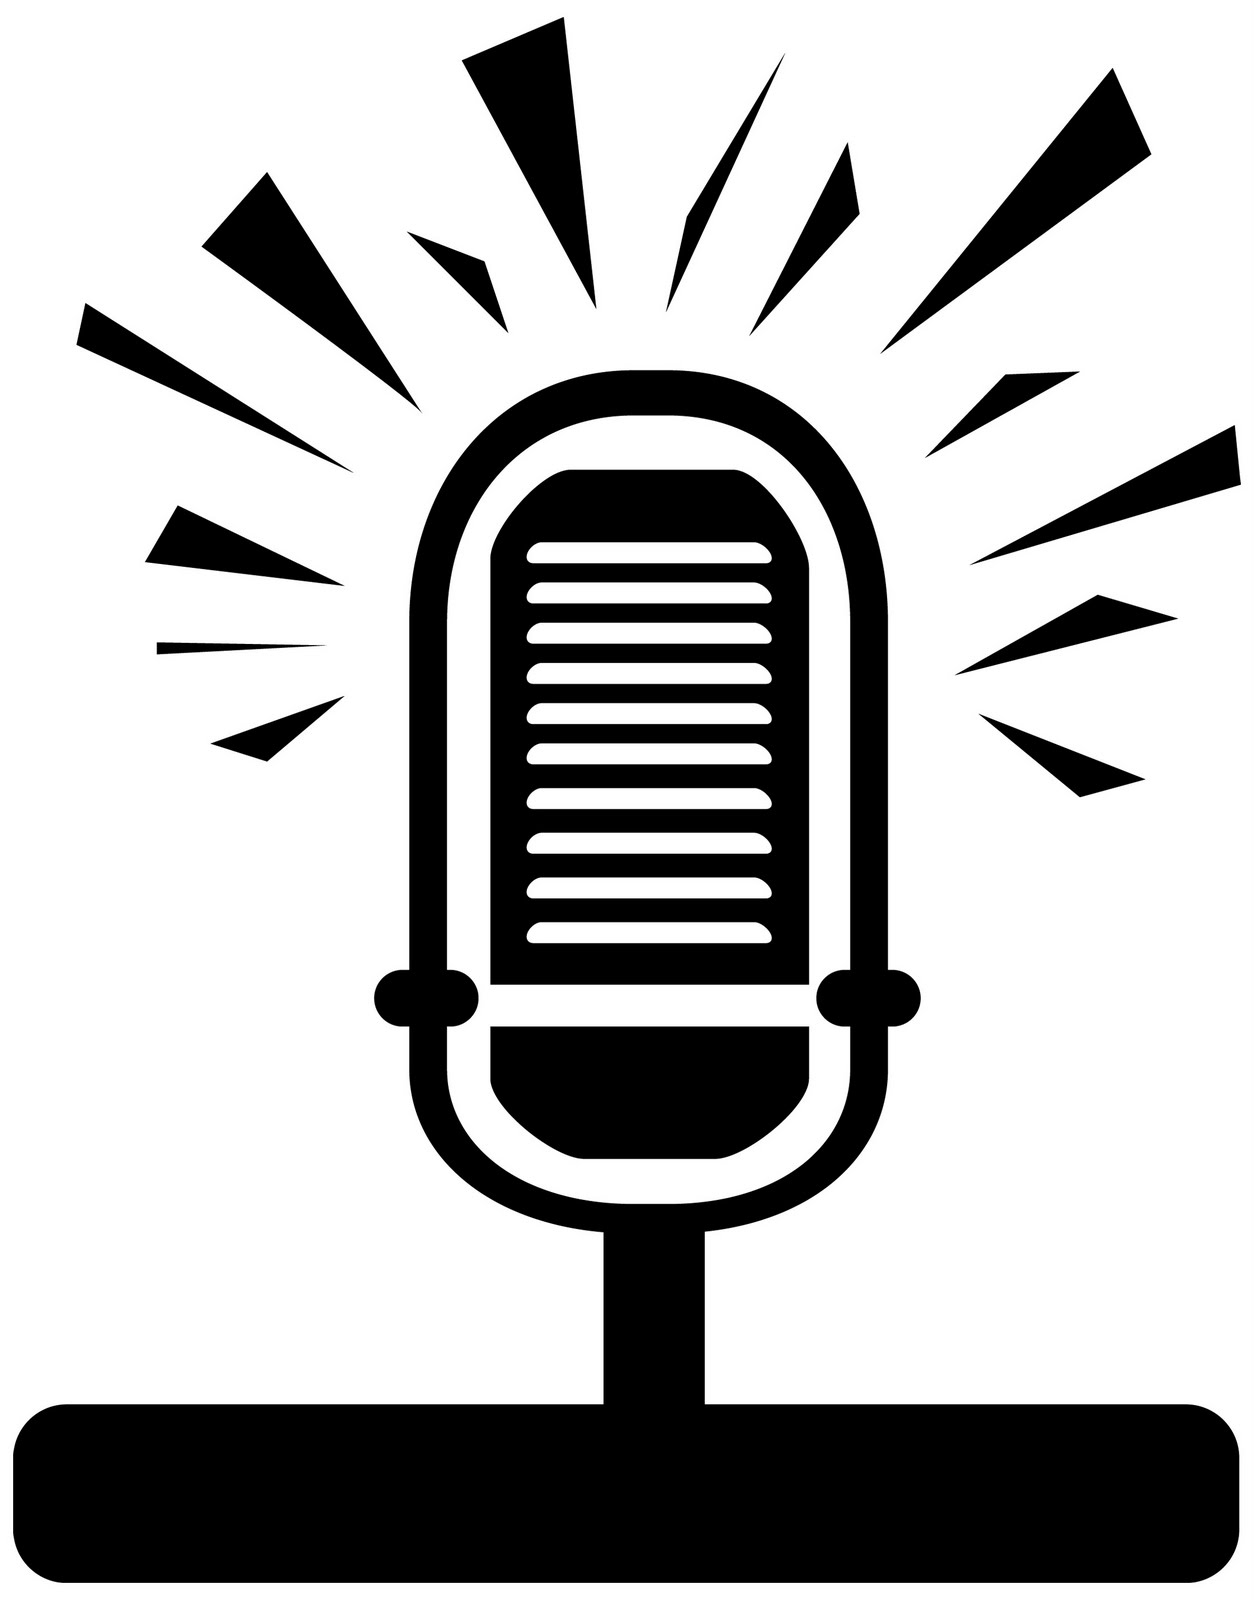 Radio broadcasting clipart clipart royalty free stock Radio Clipart | Free download best Radio Clipart on ... clipart royalty free stock